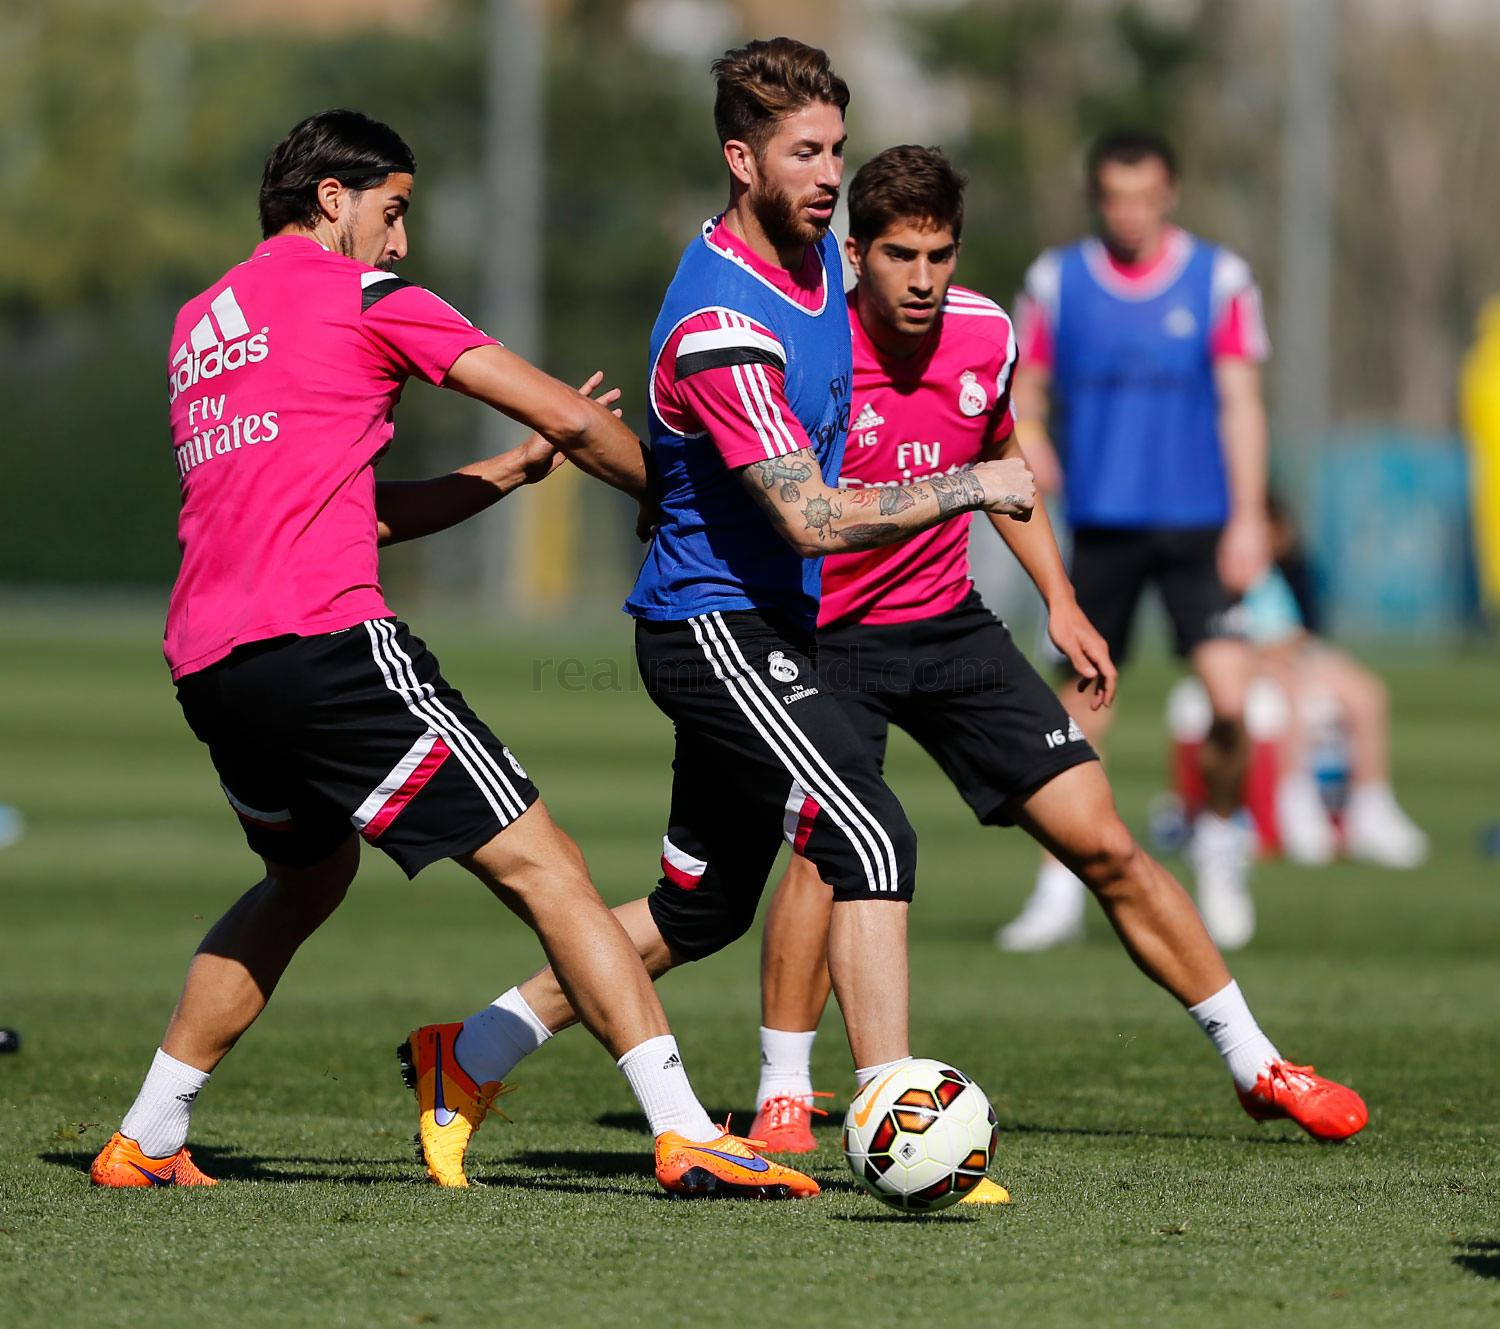 Real Madrid - Entrenamiento del Real Madrid - 02-04-2015